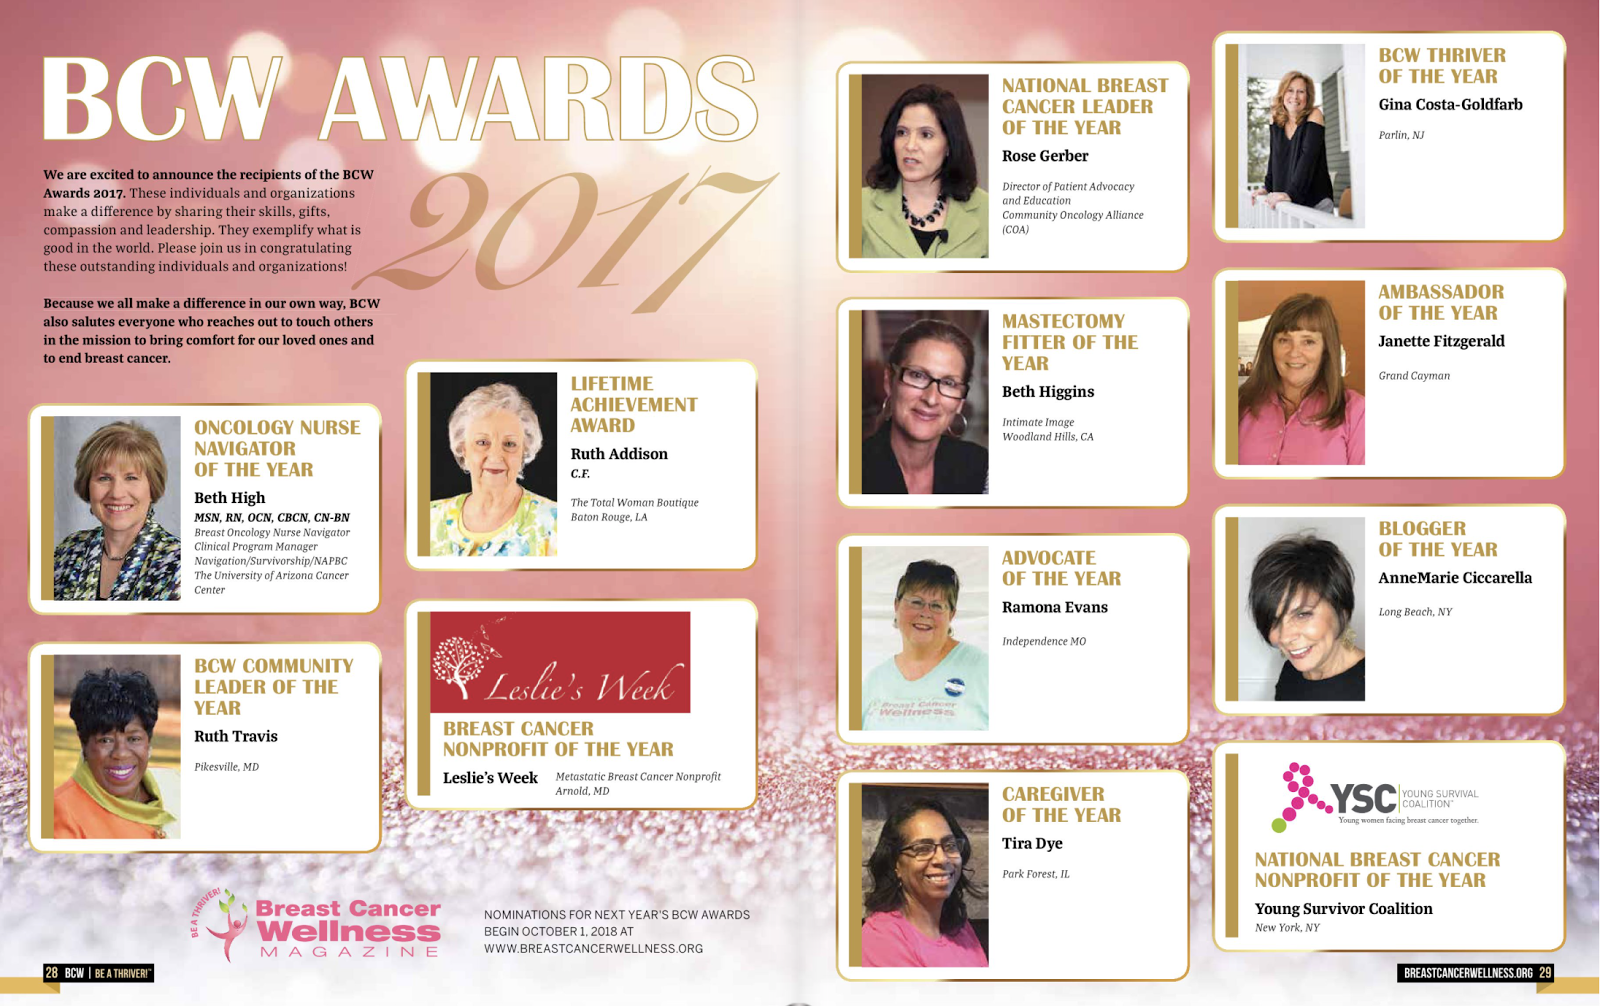 Many Thanks, Breast Cancer Wellness Magazine!